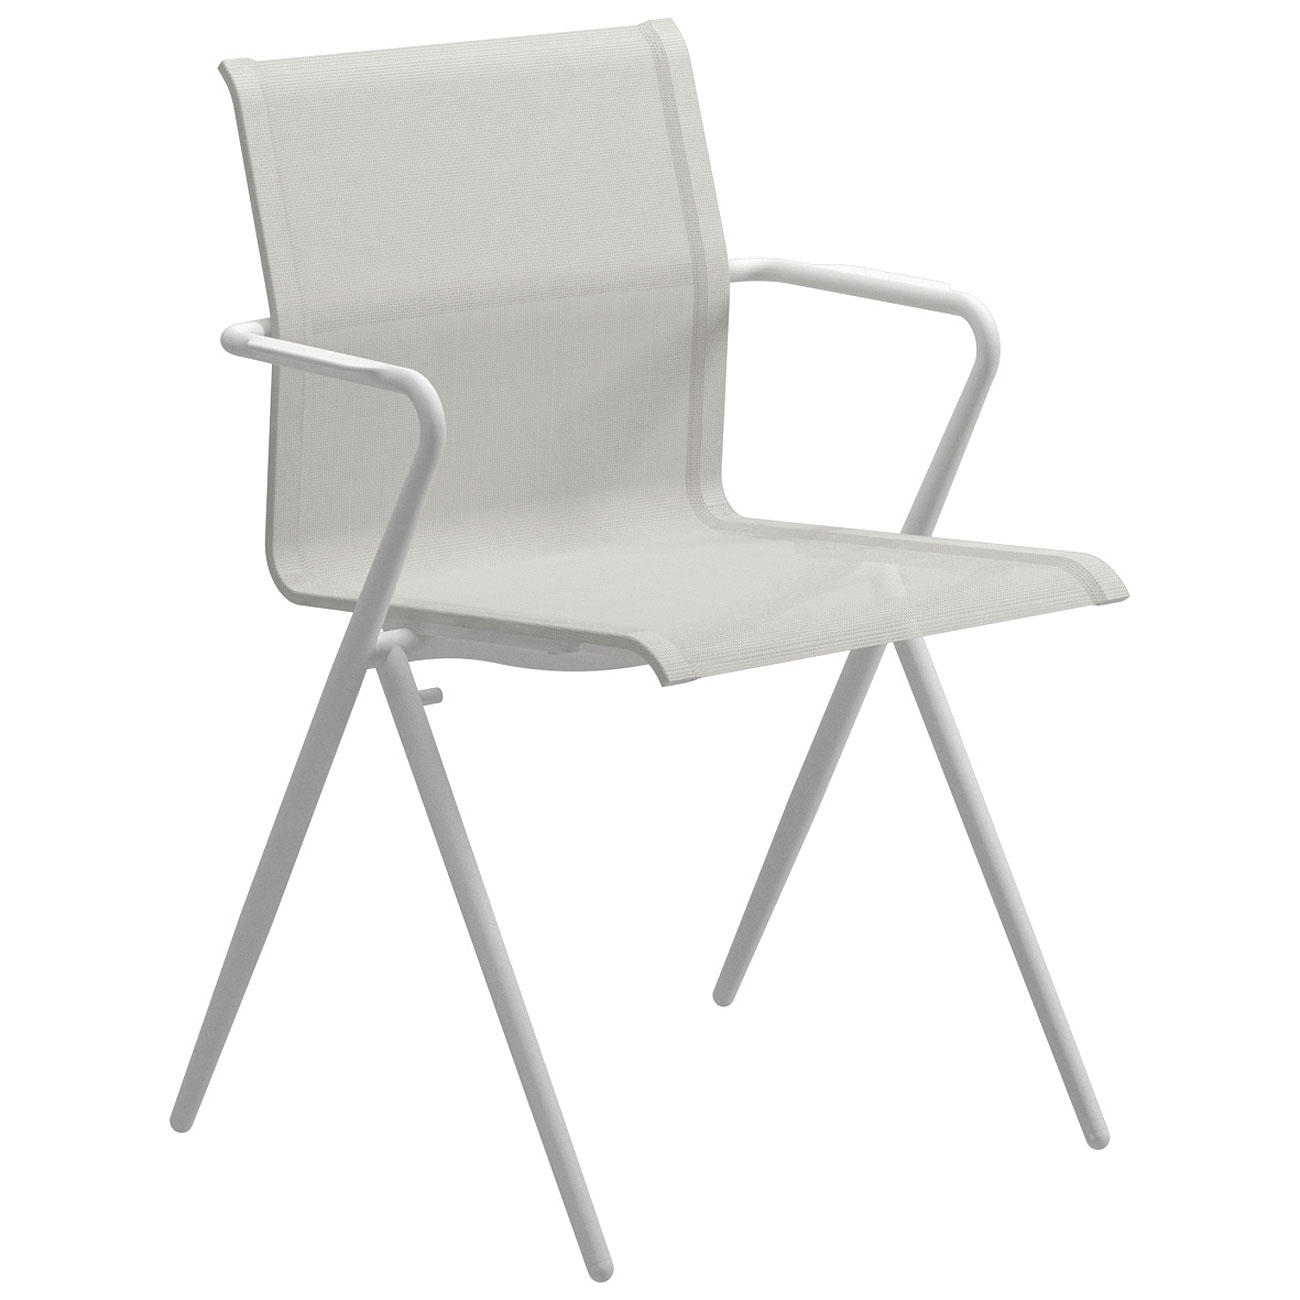 Gloster Ryder Stacking Chair White Frame Luxury